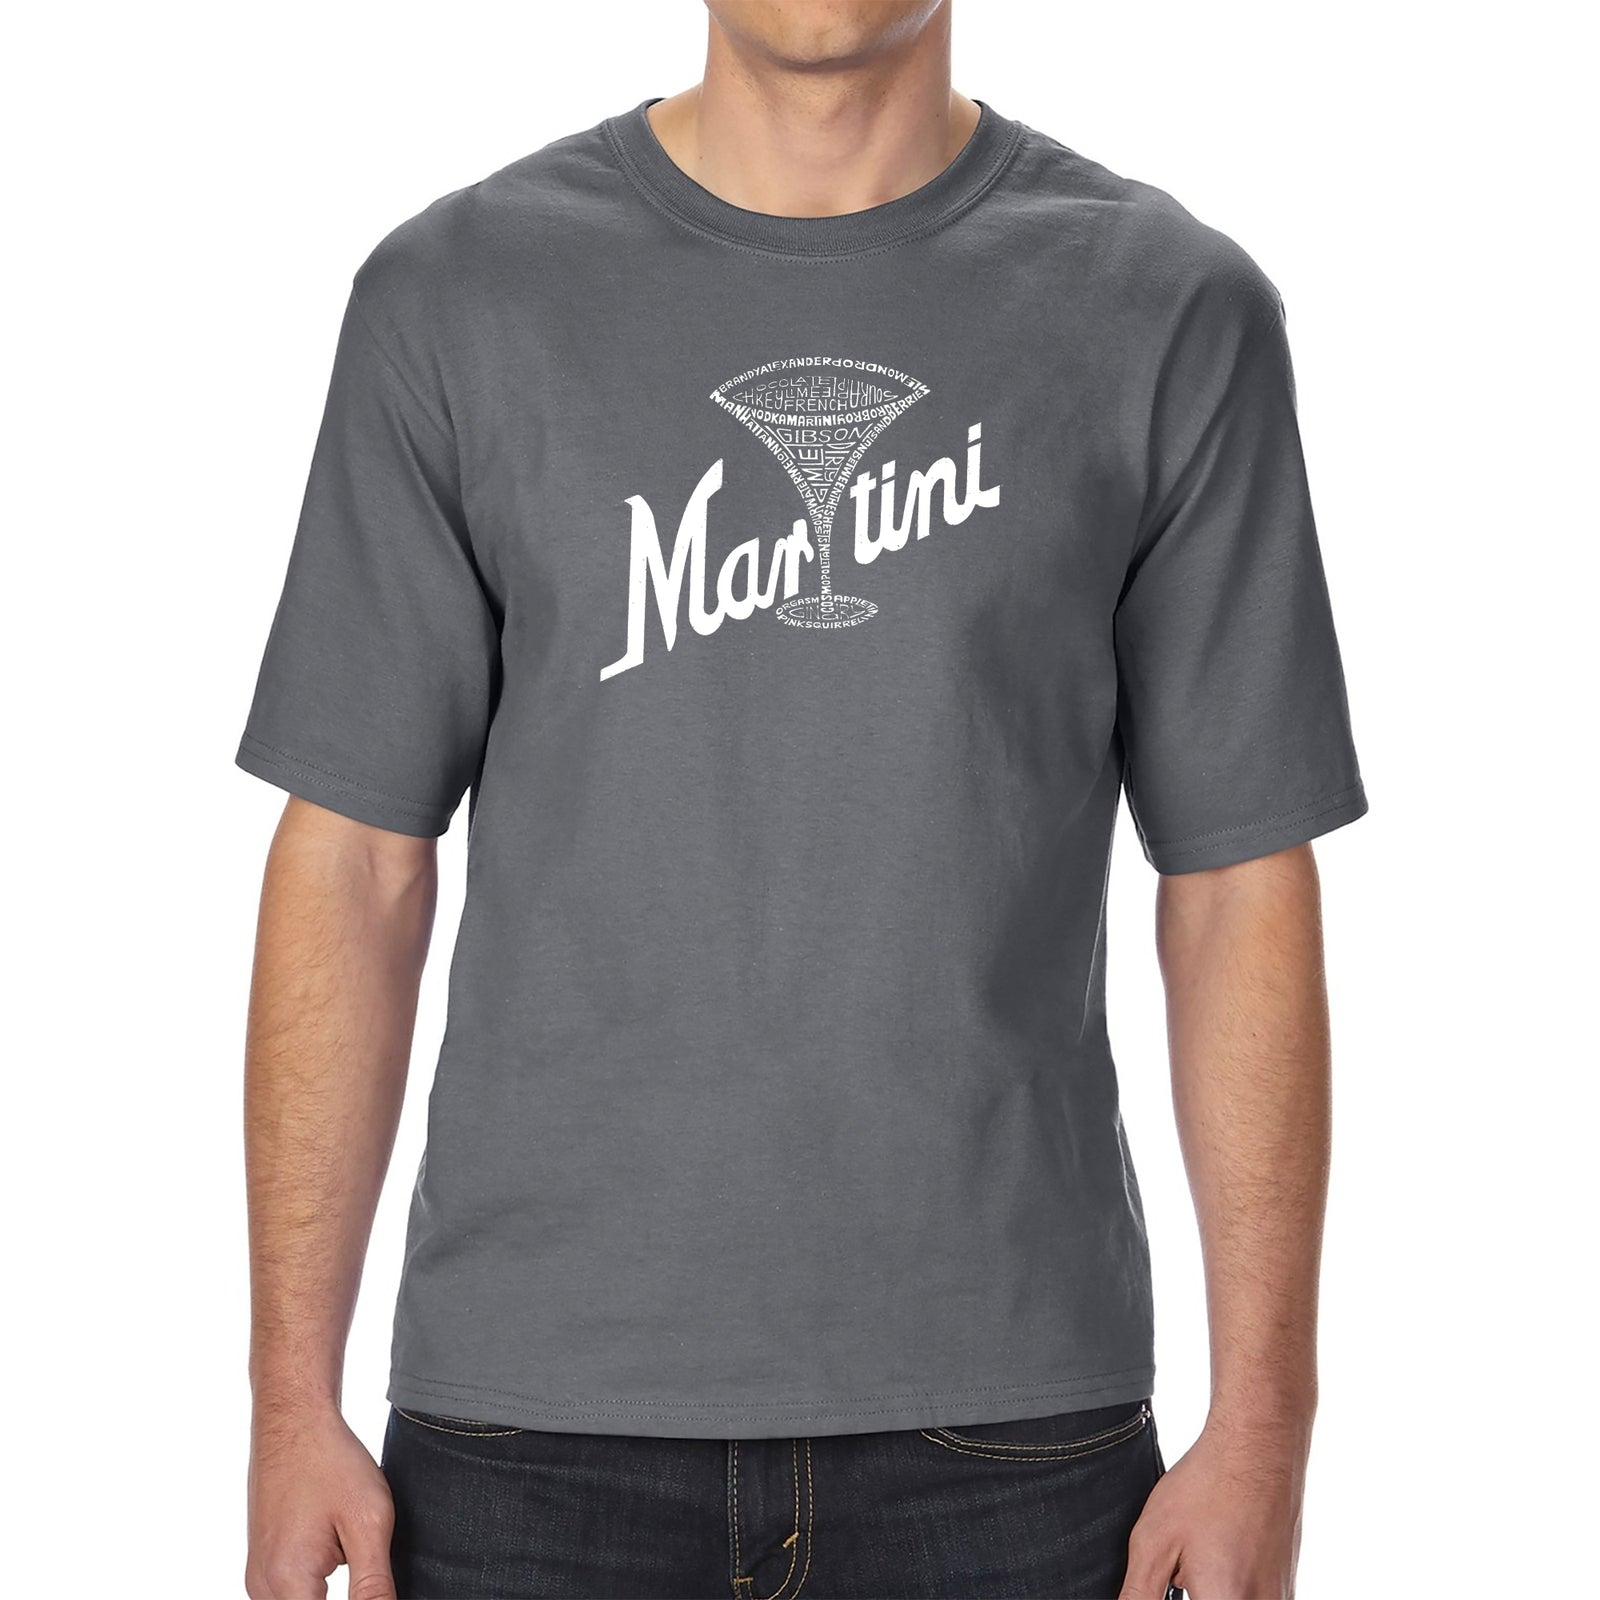 Men's Tall and Long Word Art T-shirt - Martini